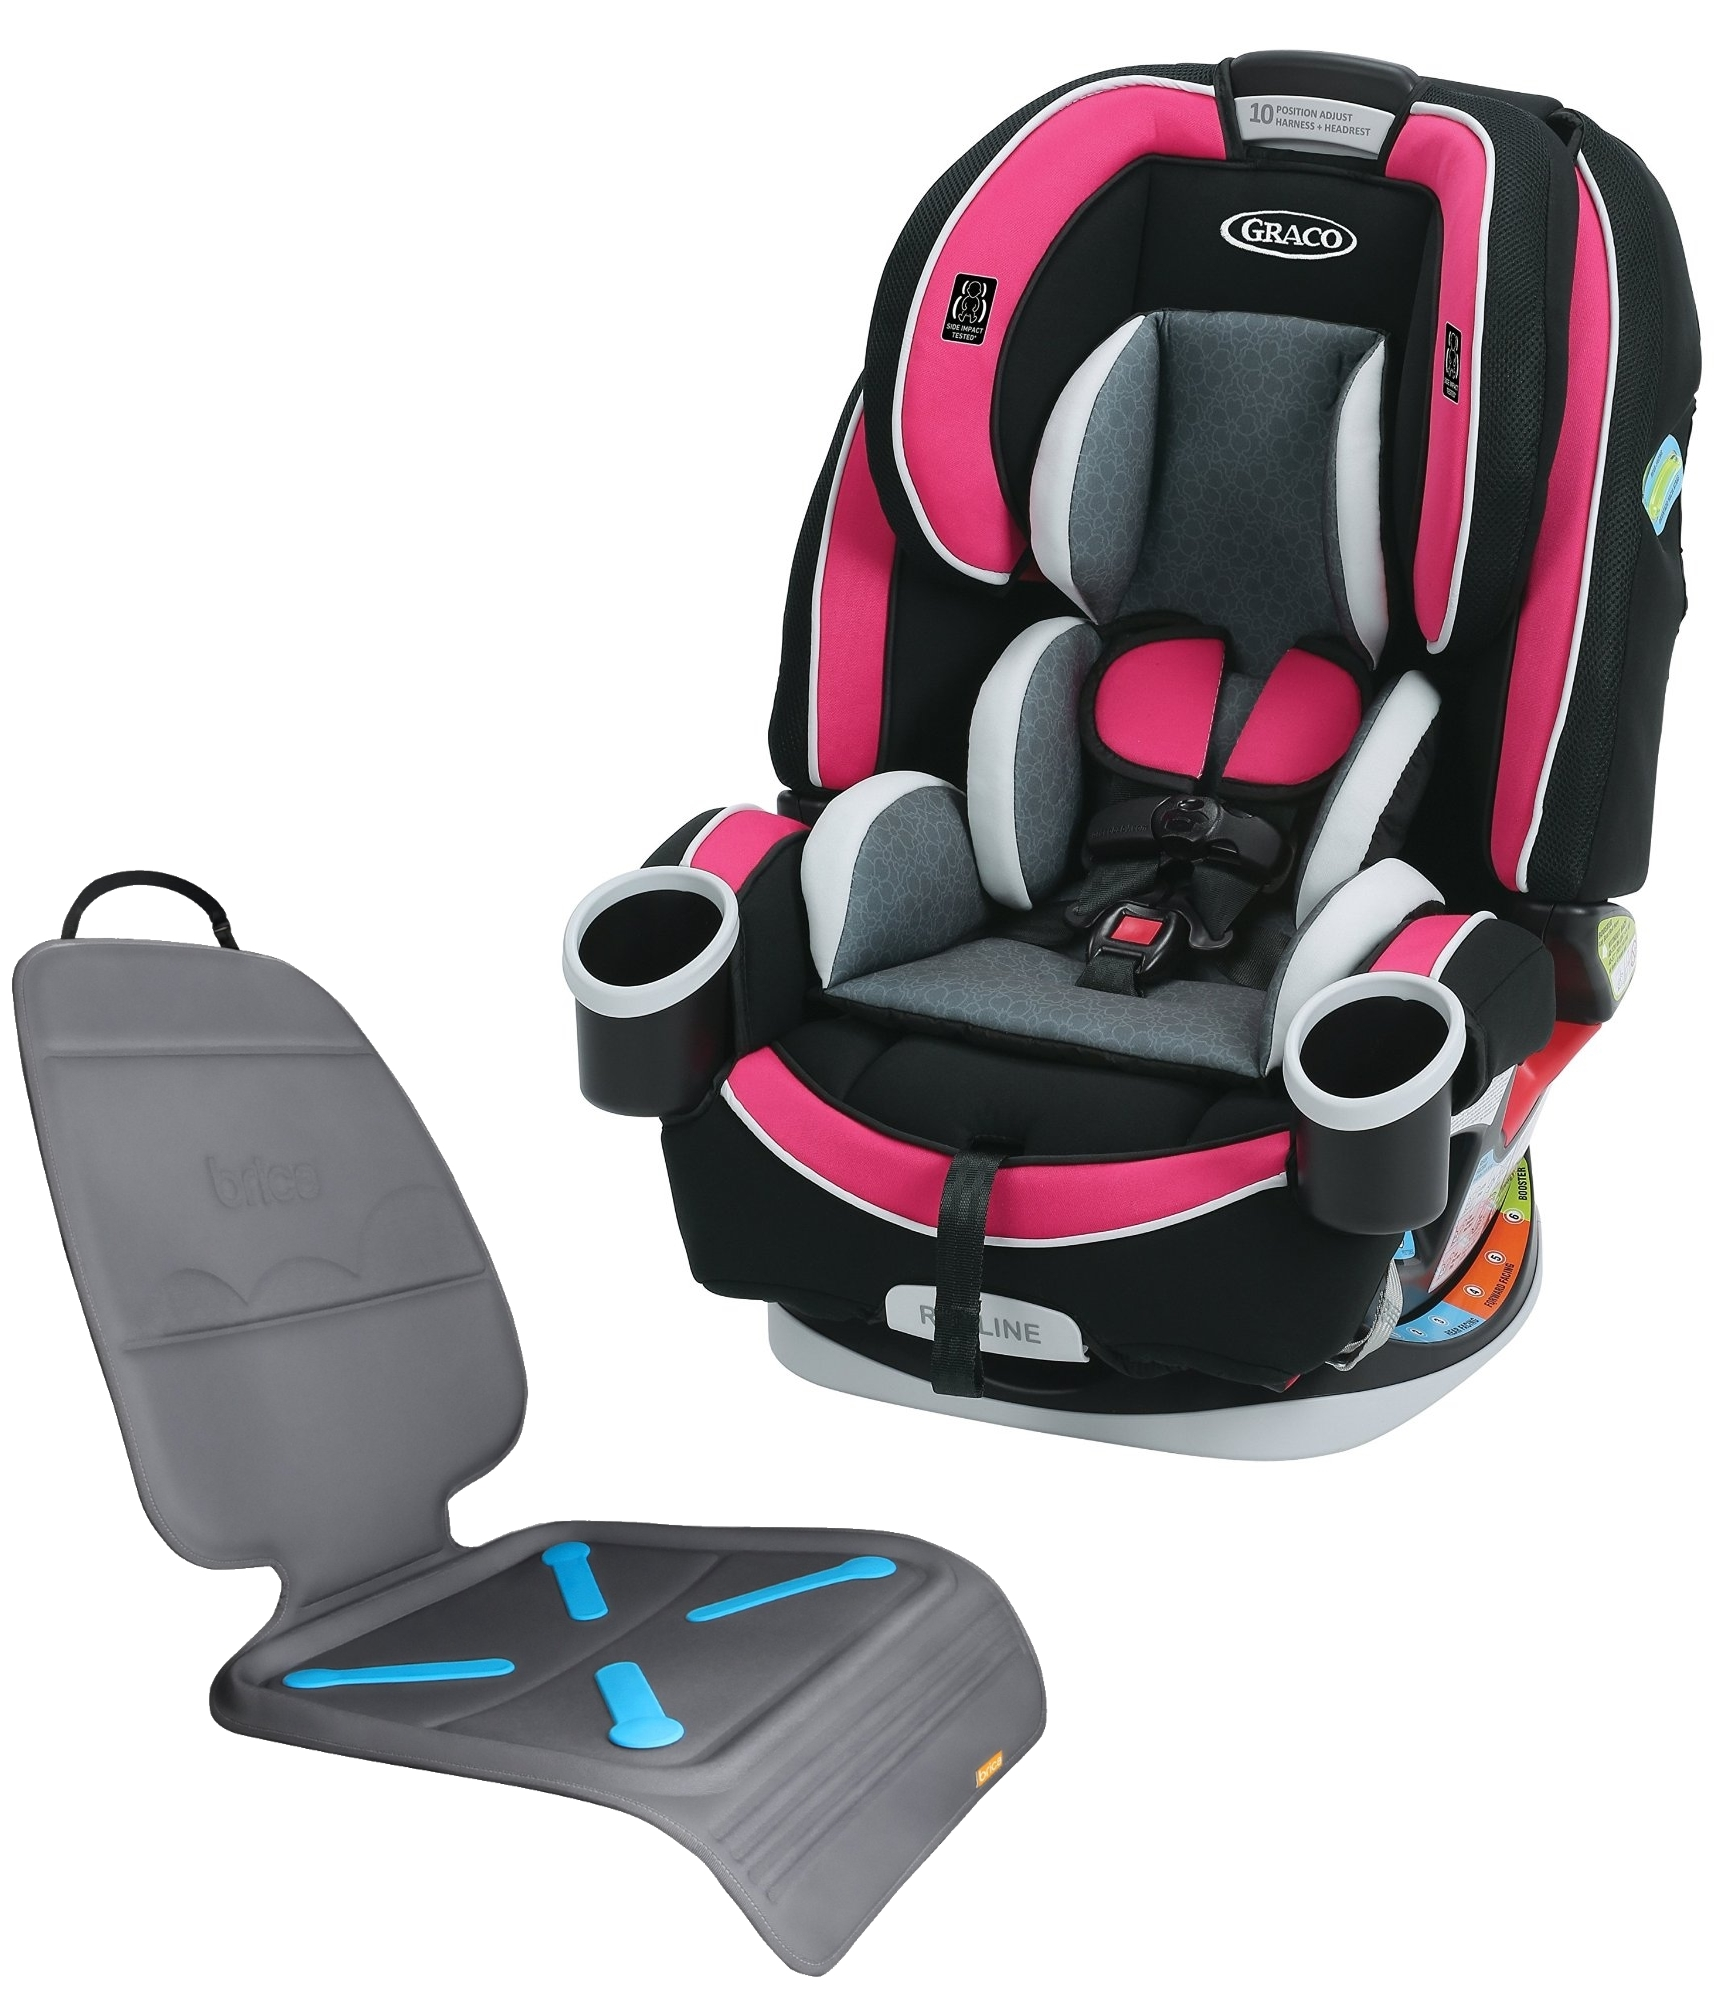 Graco 4Ever All-In-One Convertible Car Seat with Seat Protector, Azalea by Graco